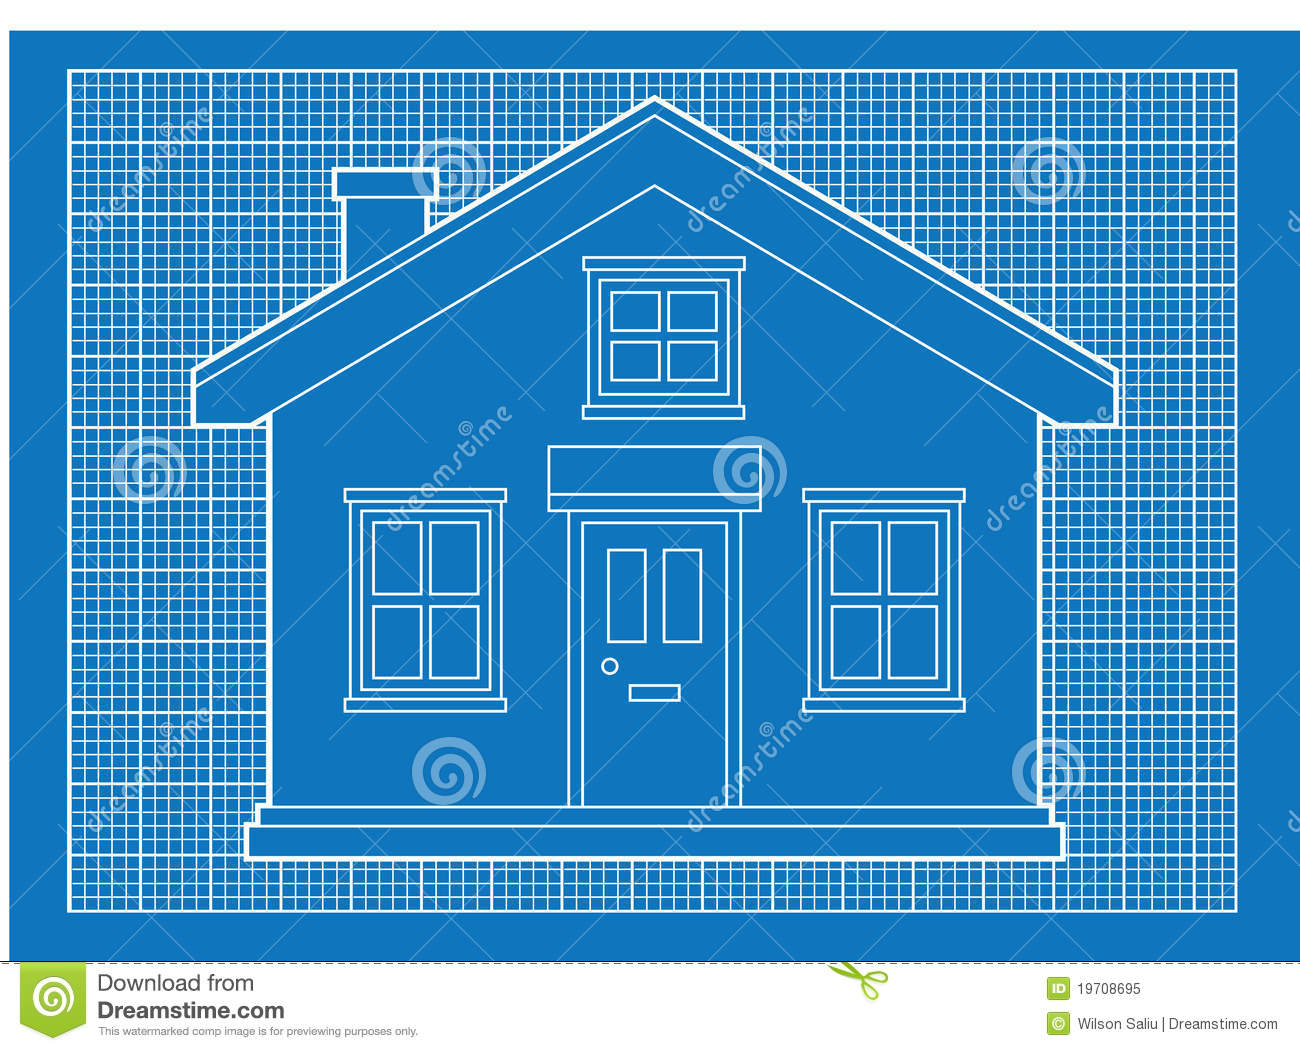 Simple house blueprints royalty free stock photo image for Blueprint designs for houses